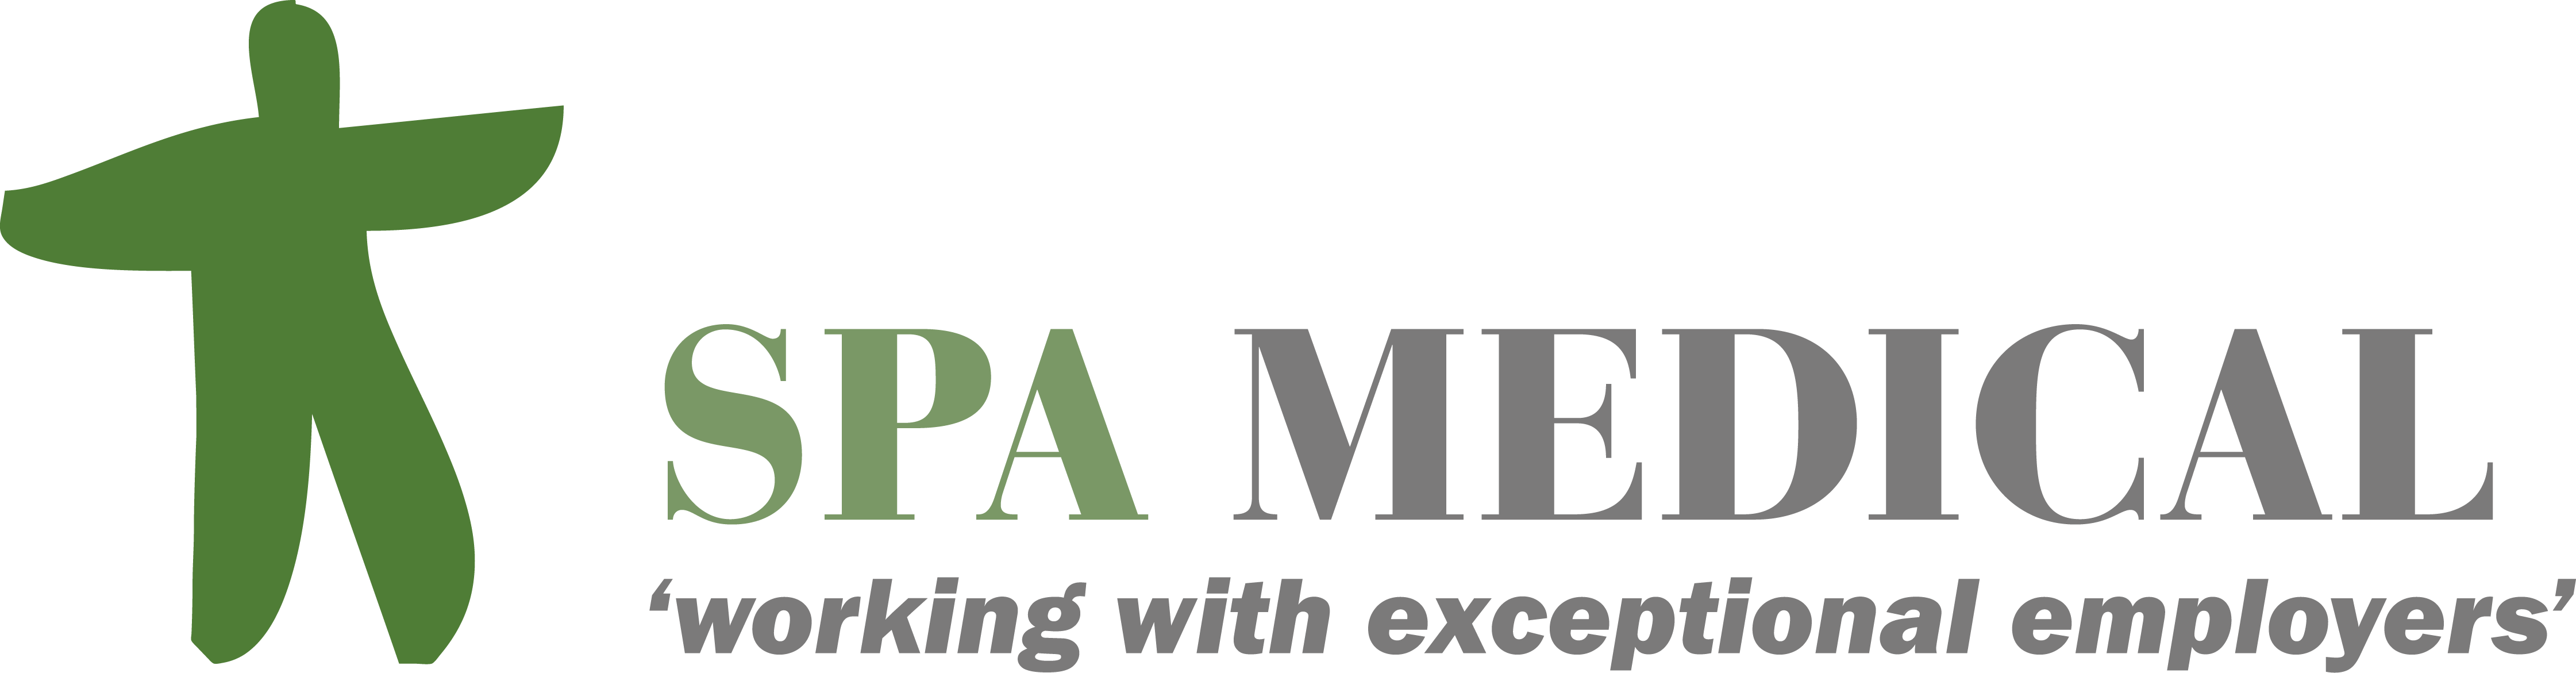 SPA Medical Services